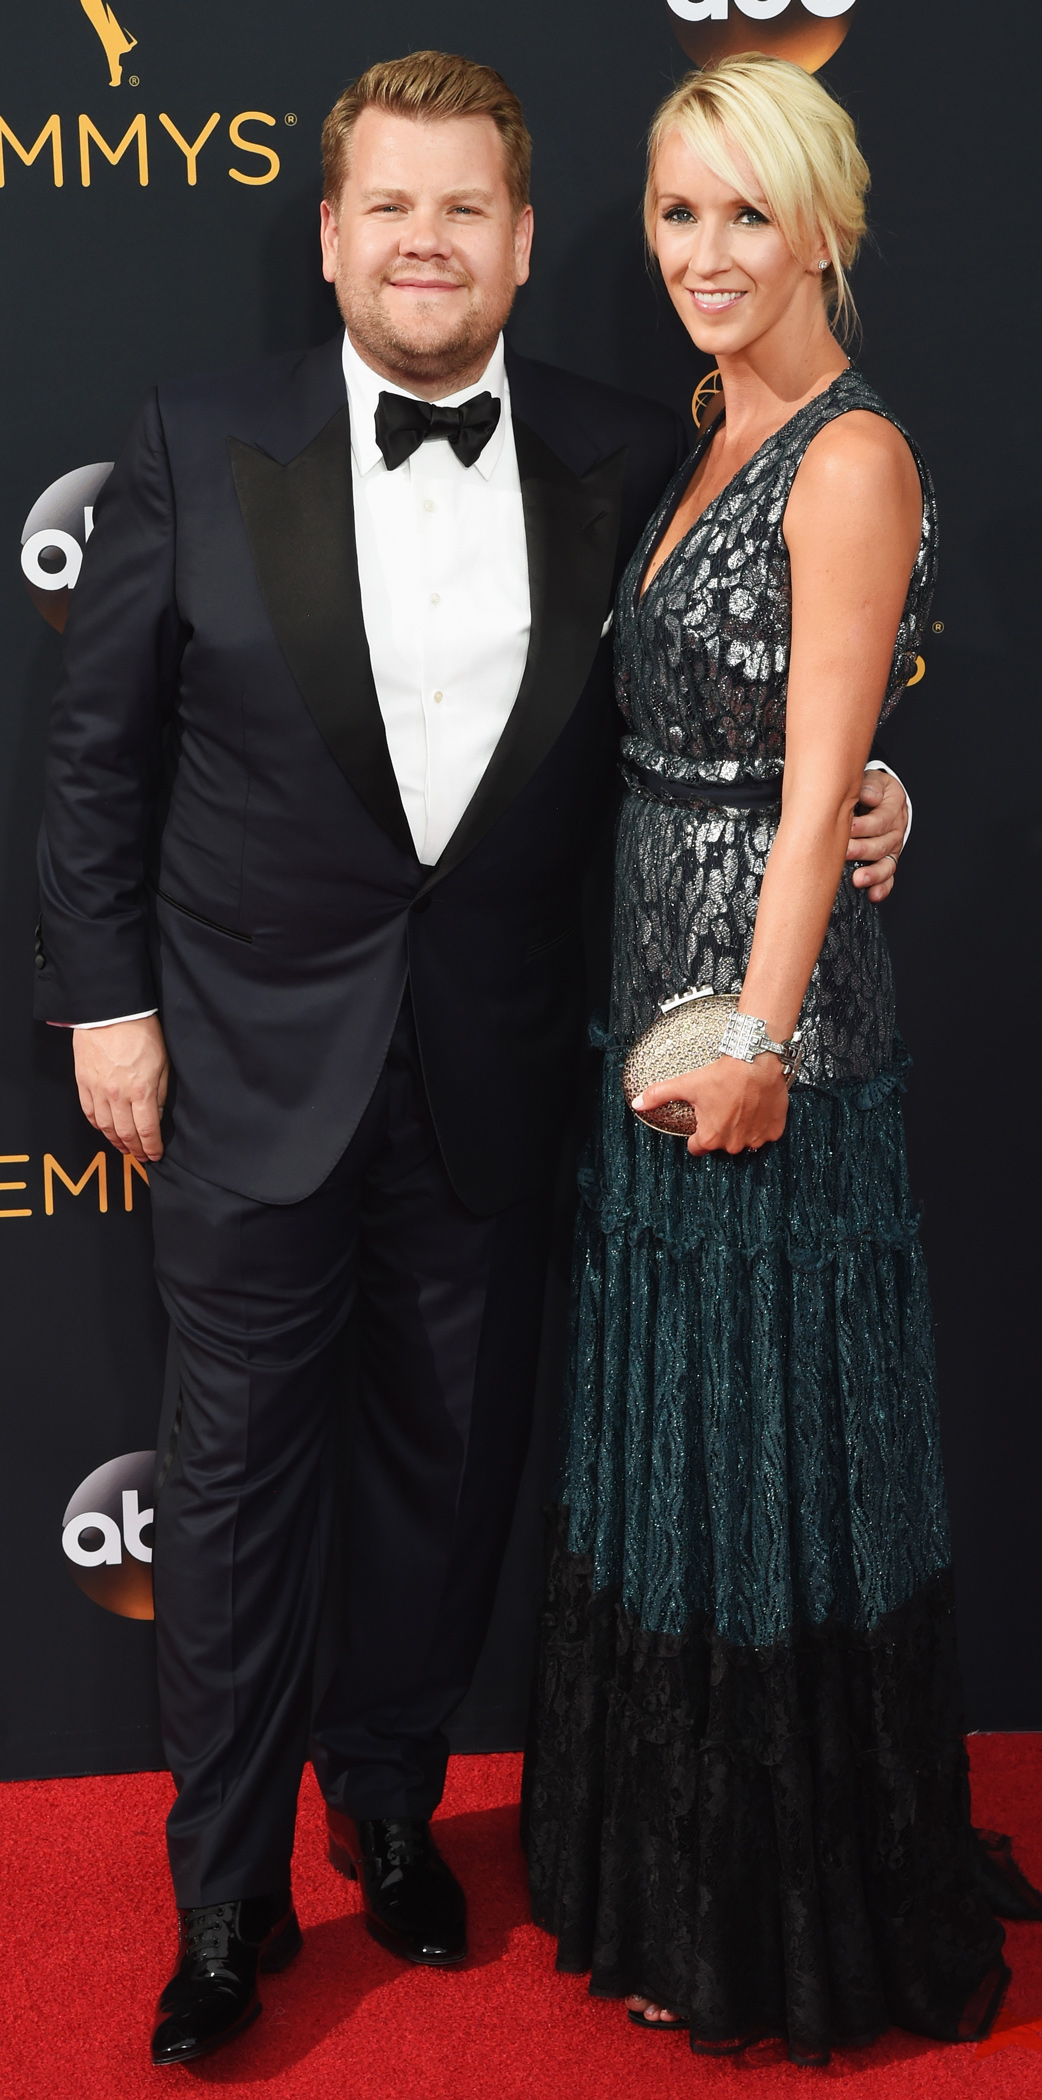 James Corden and Julia Carey Are Expecting Their Third Child!